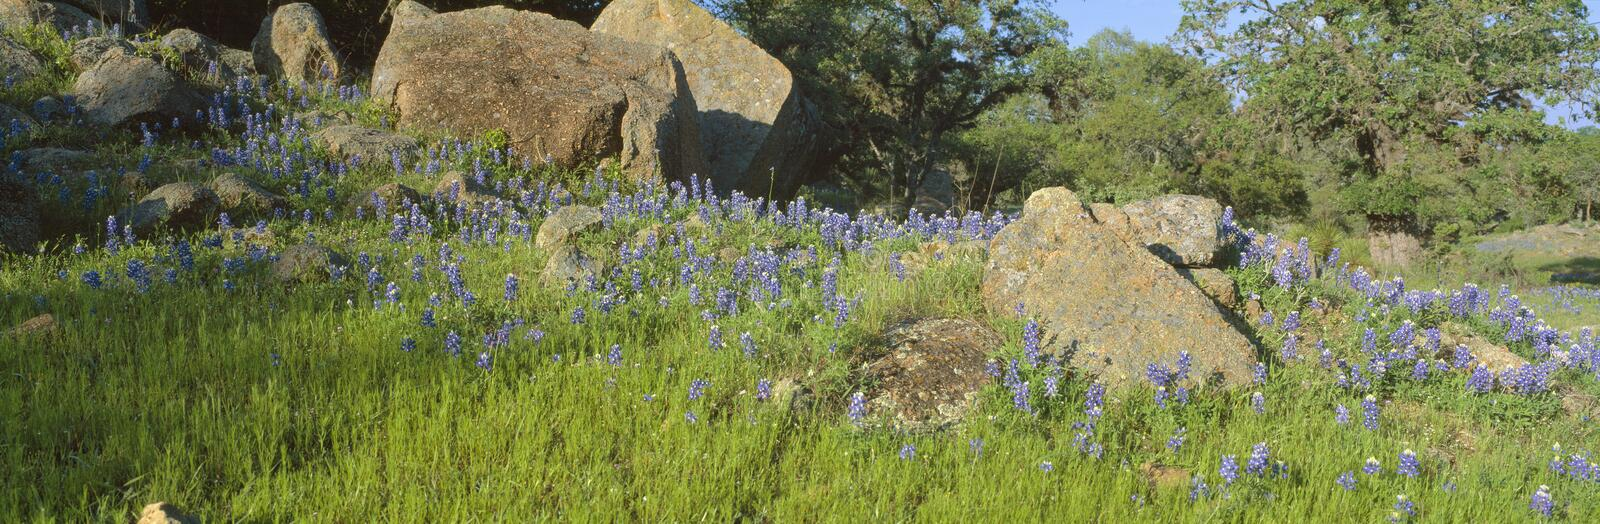 Blue bonnets in Hill Country royalty free stock photography